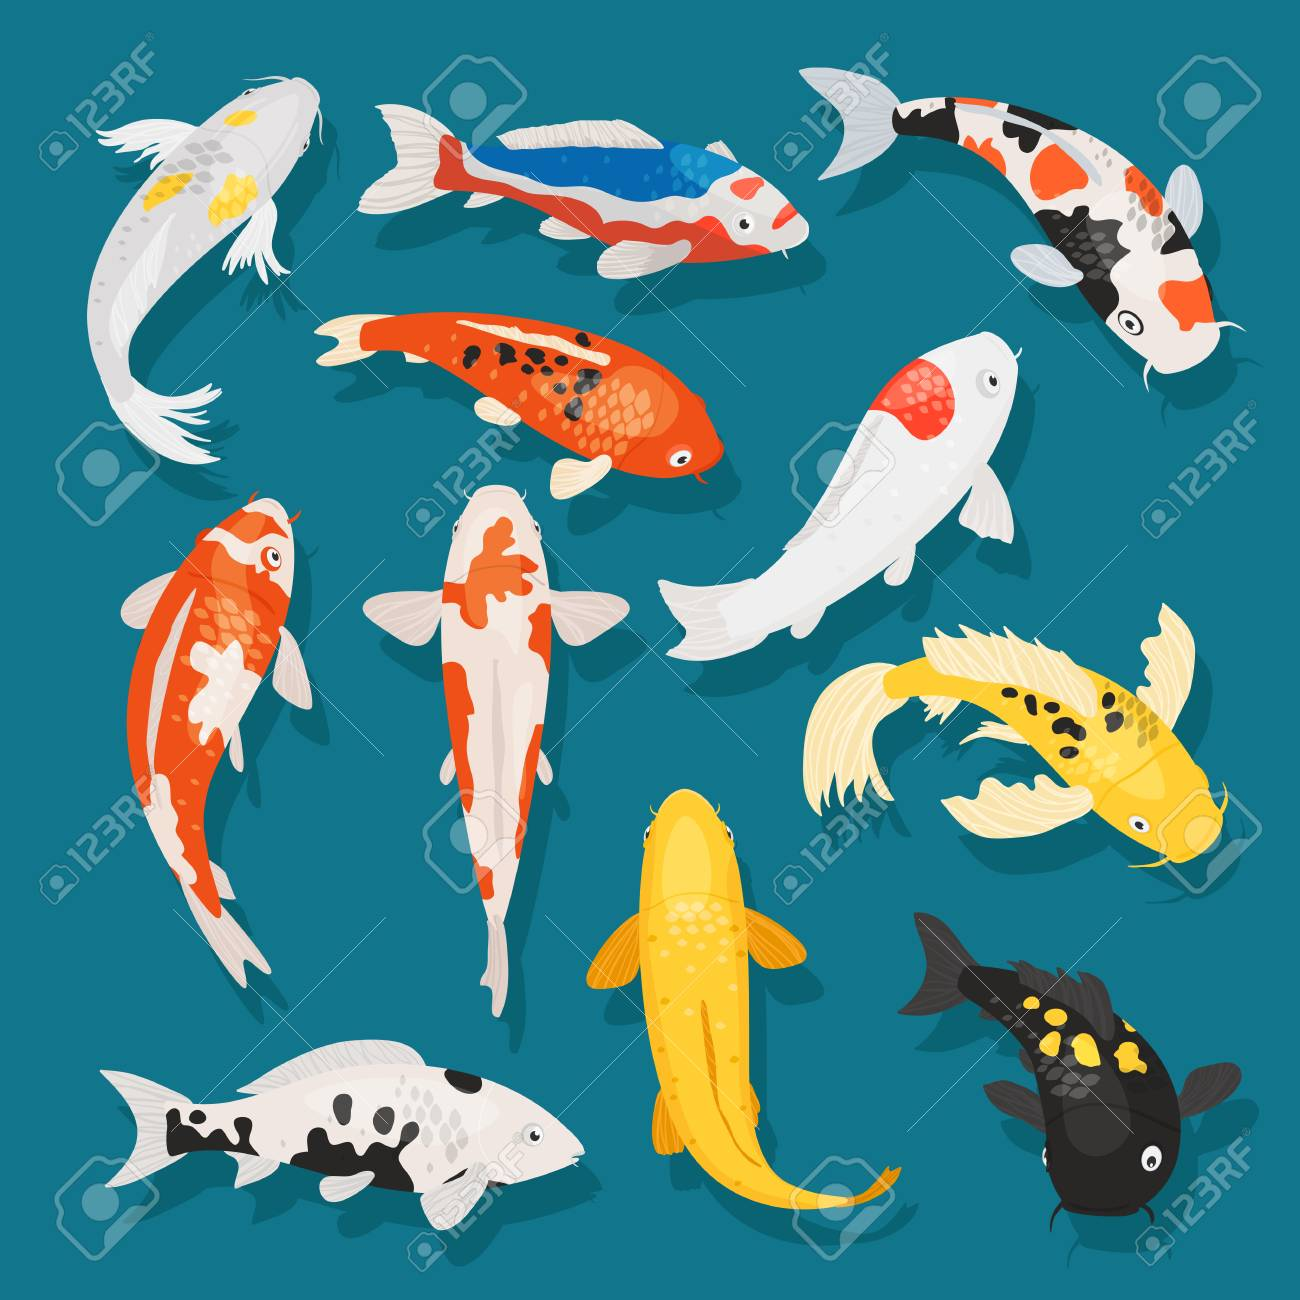 Japanese fish vector illustration carp and colorful oriental koi in Asia set of Chinese goldfish and traditional fishery isolated background - 98753308